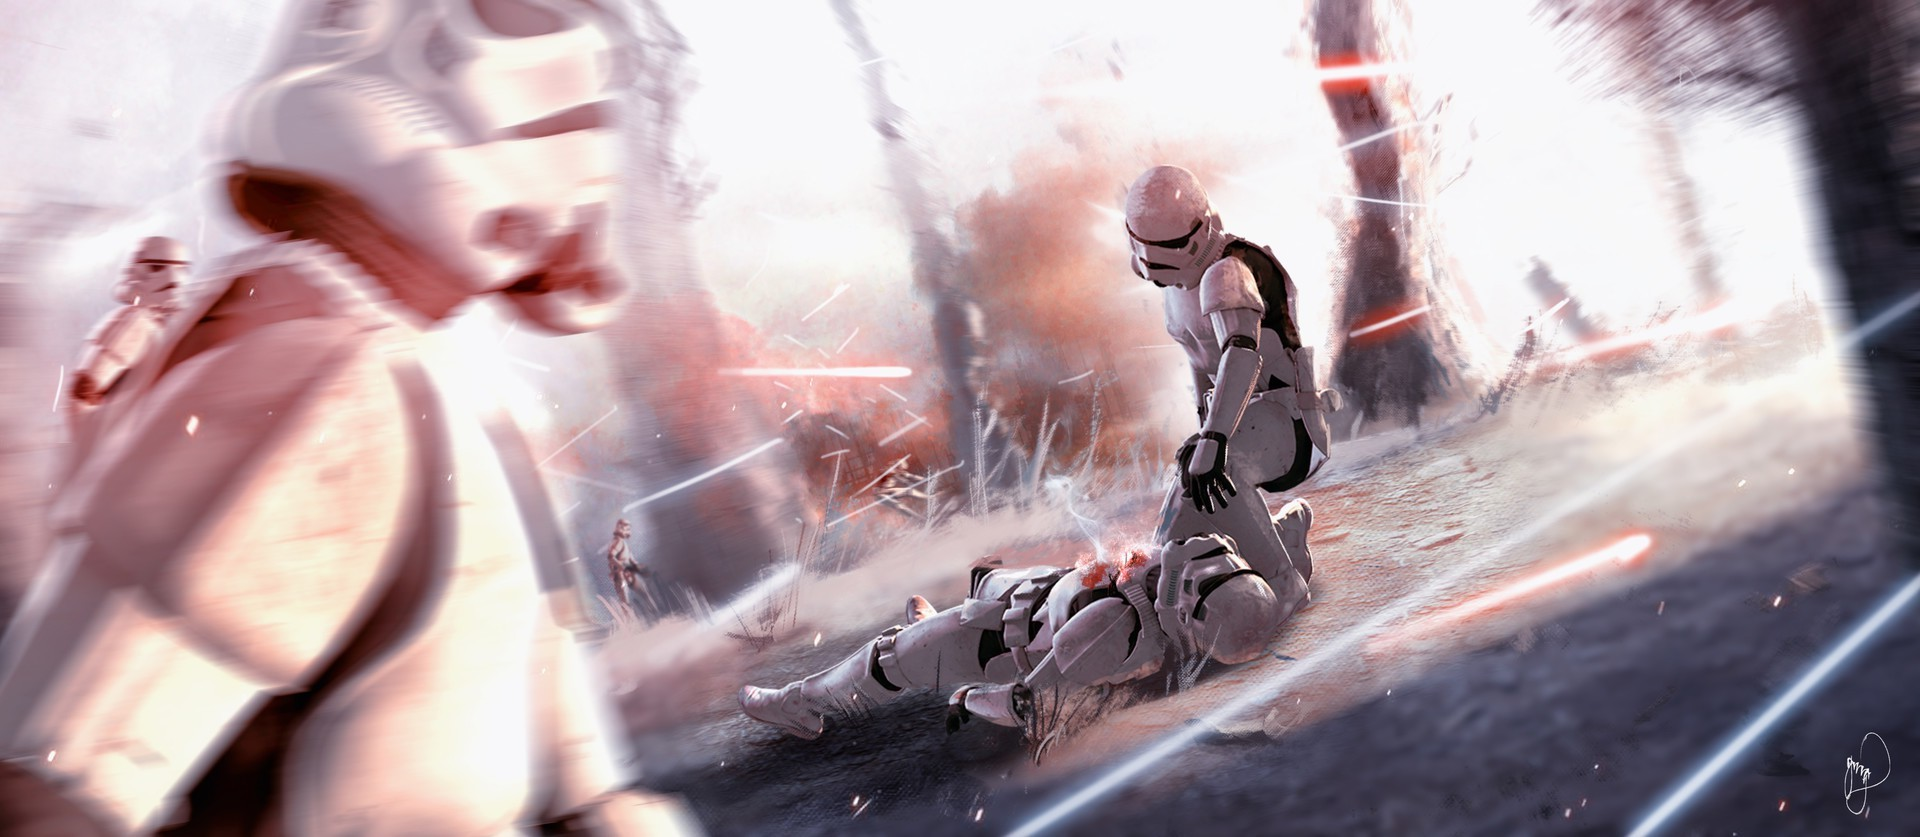 New 3d Desktop Wallpaper Hd 16 Star Wars Battle Wallpapers Hd Desktop And Mobile